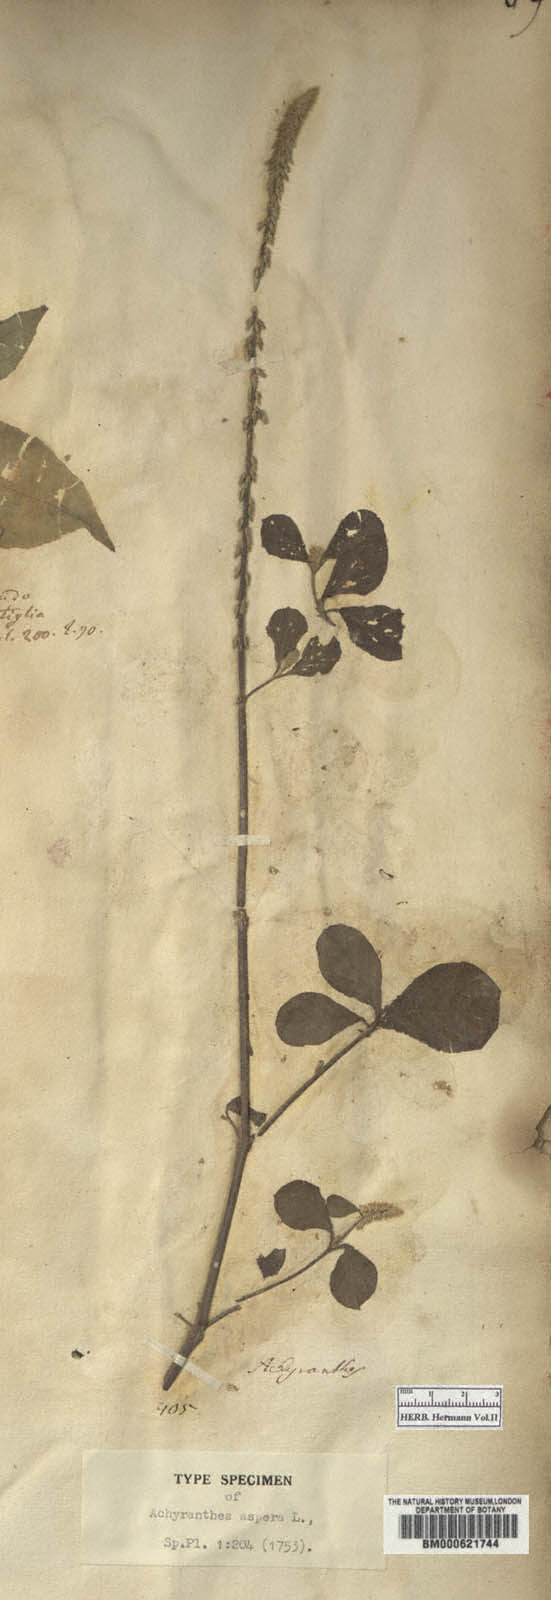 http://www.nhm.ac.uk//resources/research-curation/projects/hermann-herbarium/lgimages/BM000621744.JPG